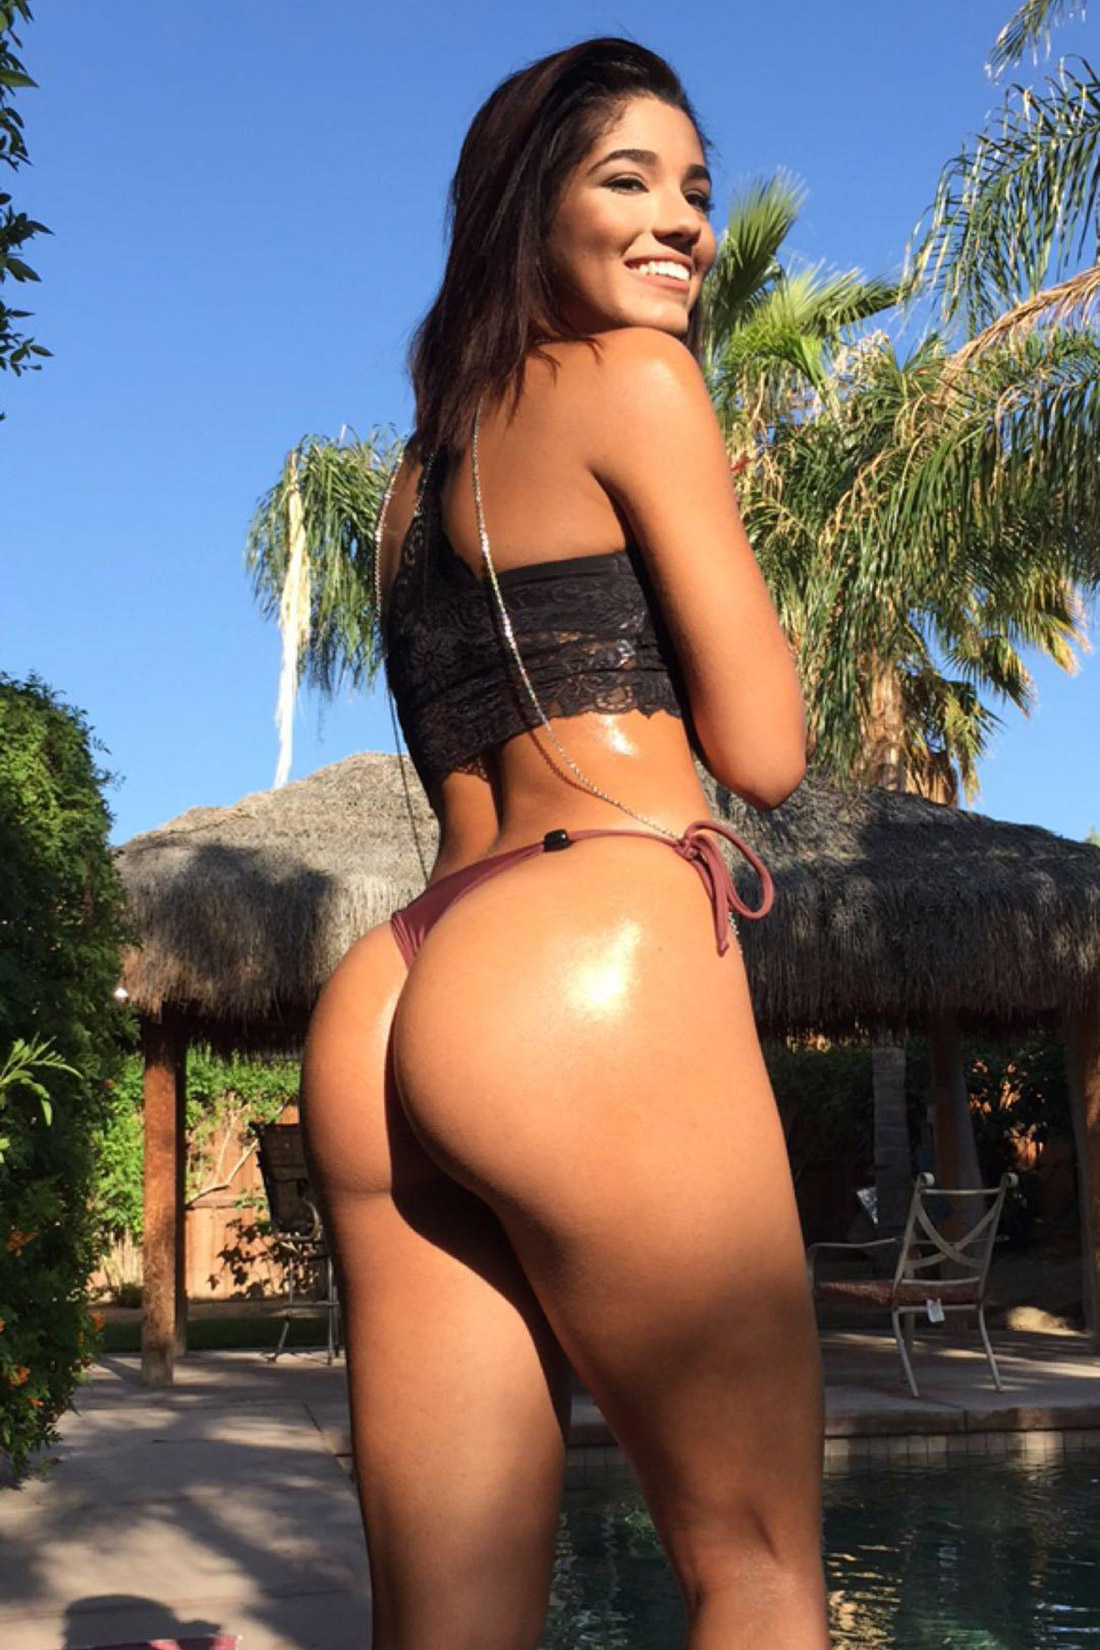 naughty pic of yovanna ventura in string bikini thong looking back at the camera